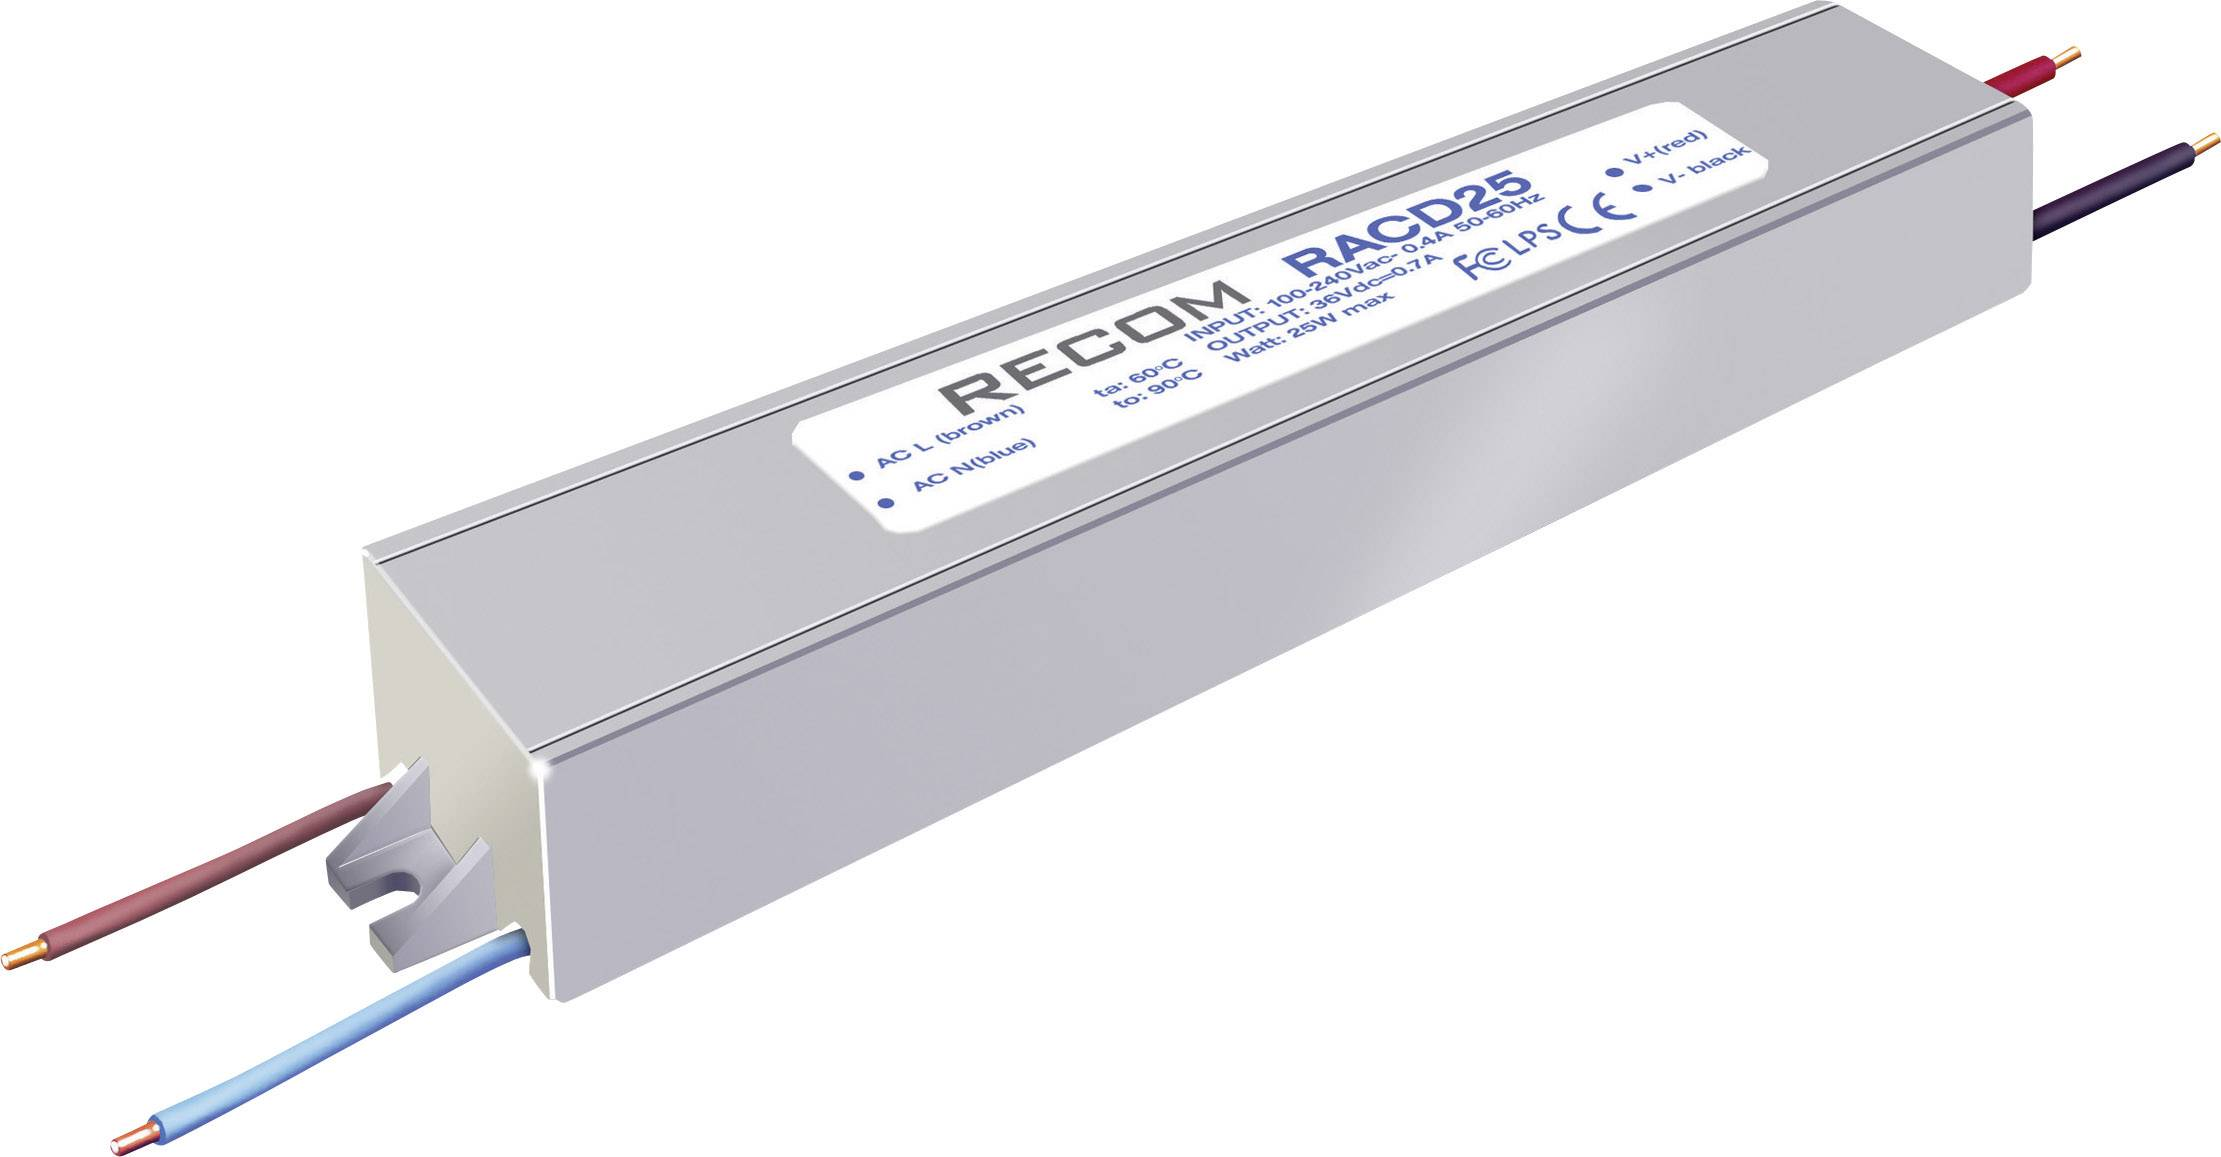 LED driver Recom Lighting RACD25-500P, 25 W (max), 0.52 A, 42 - 52 V/DC